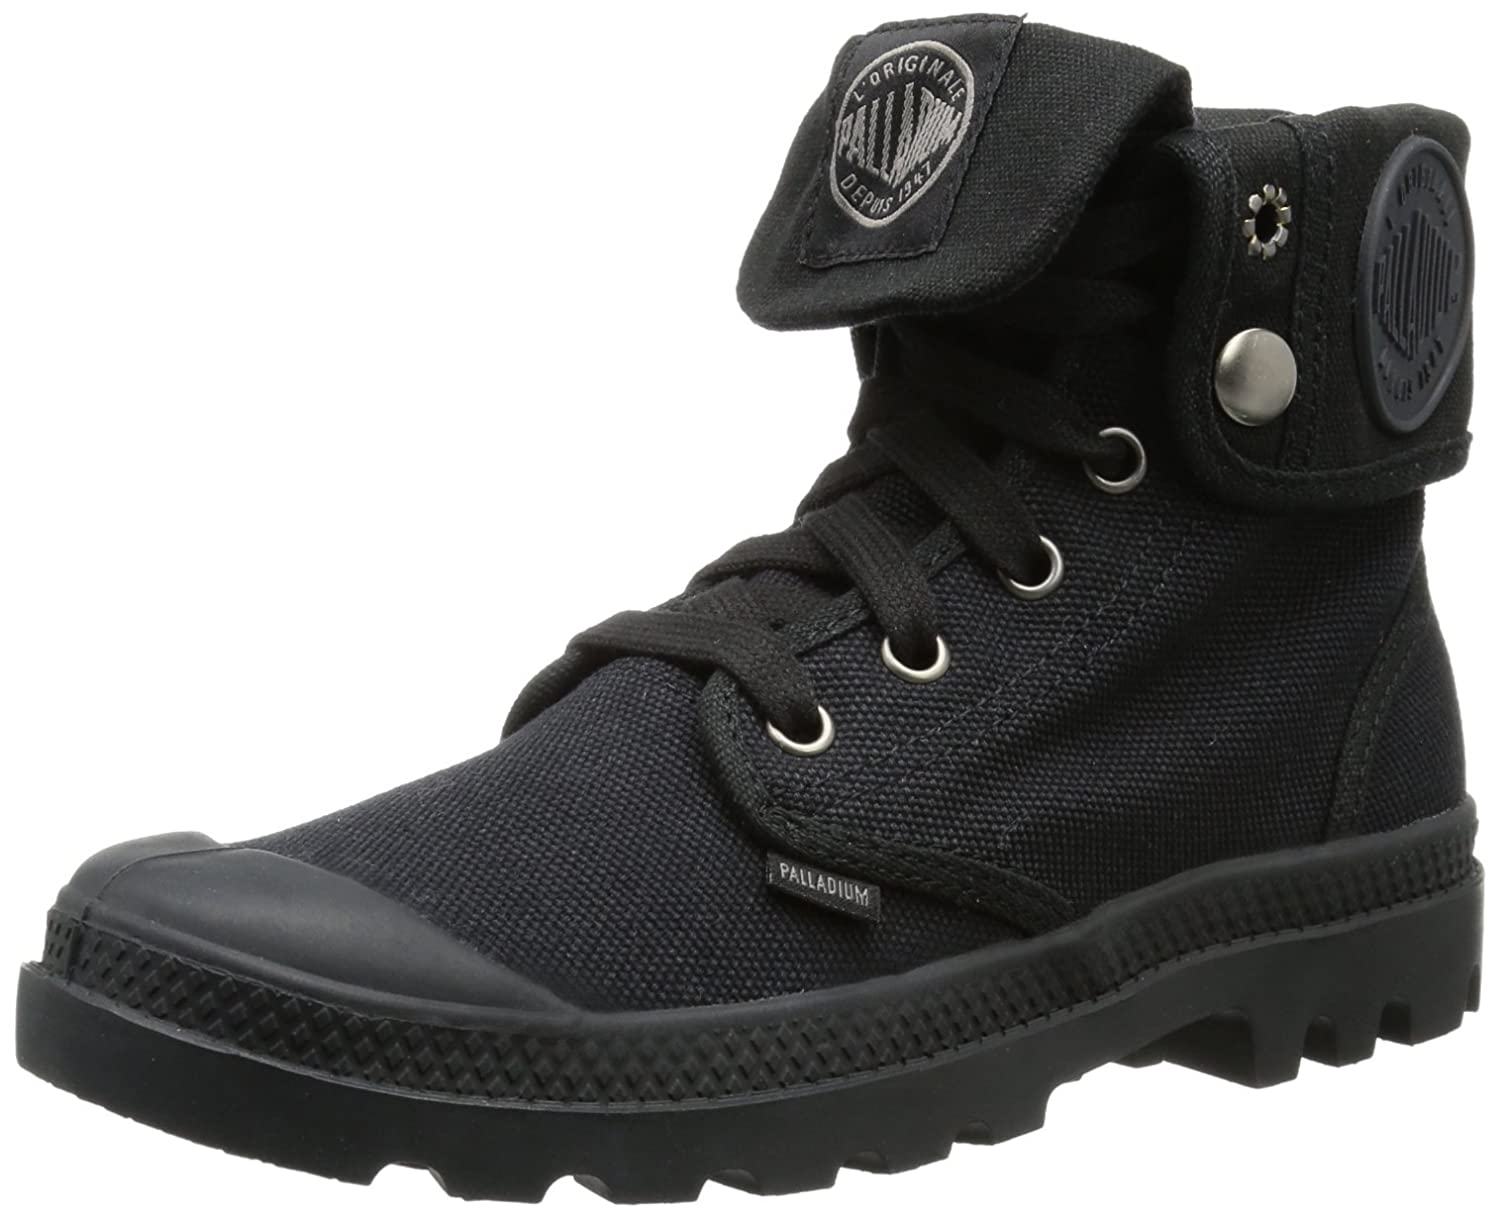 Palladium Women's Baggy Canvas Boot B0038X30KI 5.5 B(M) US|Black